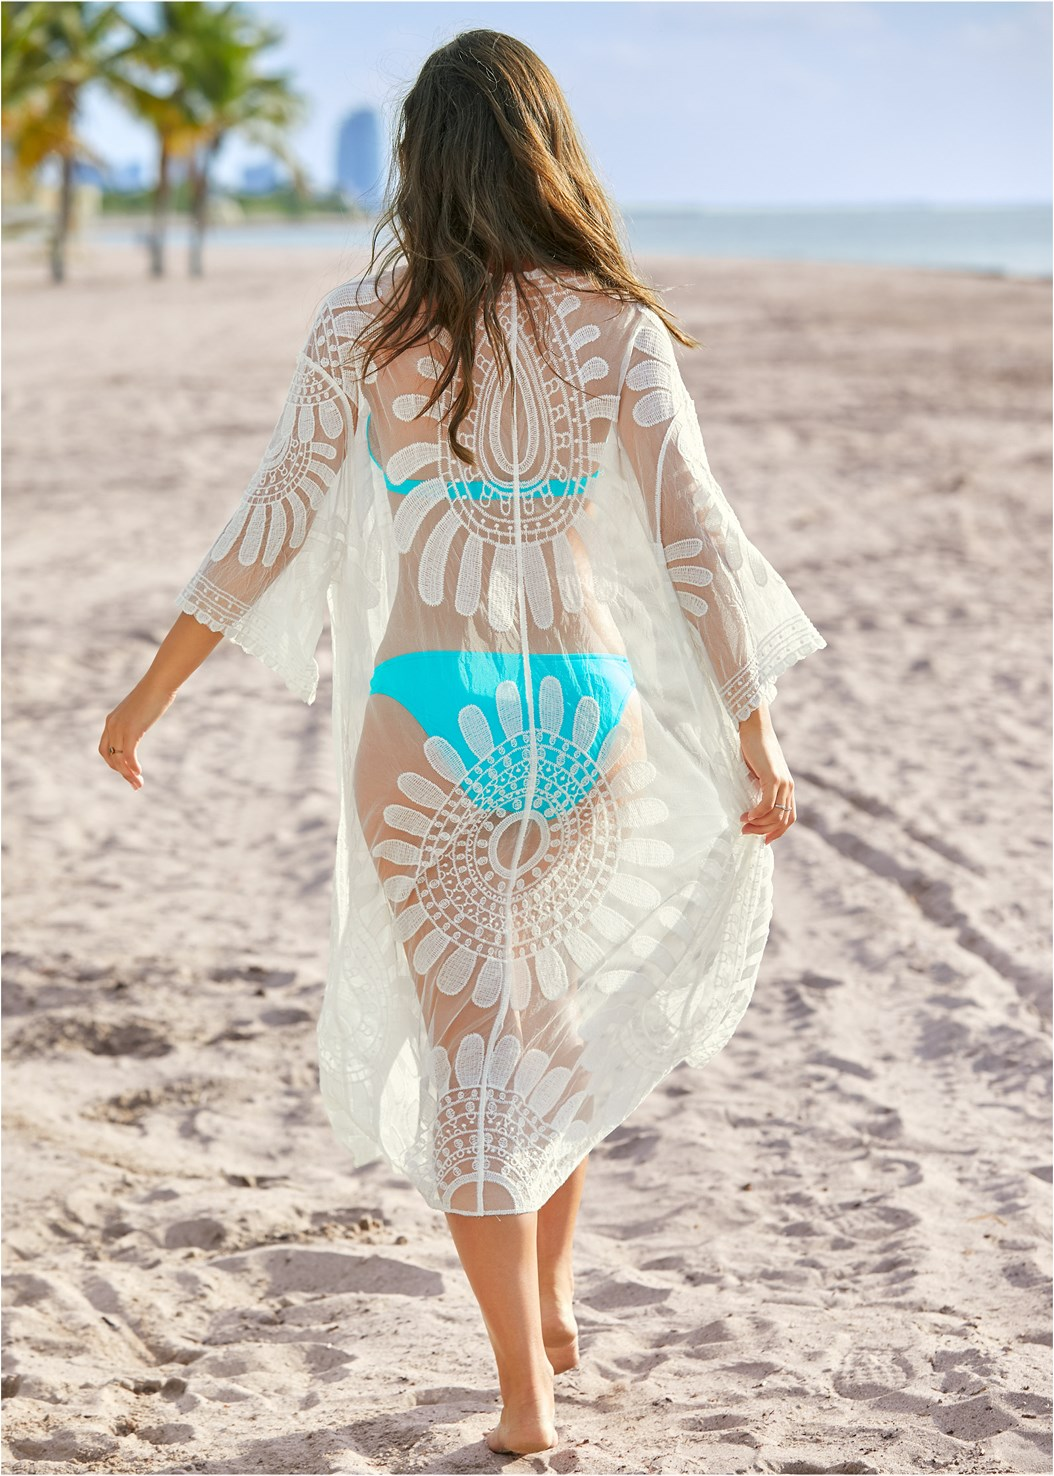 Lace Kimono Cover-Up,Goddess Enhancer Push Up Halter Top,Goddess Low Rise Bottom,Lacy Plunge One-Piece